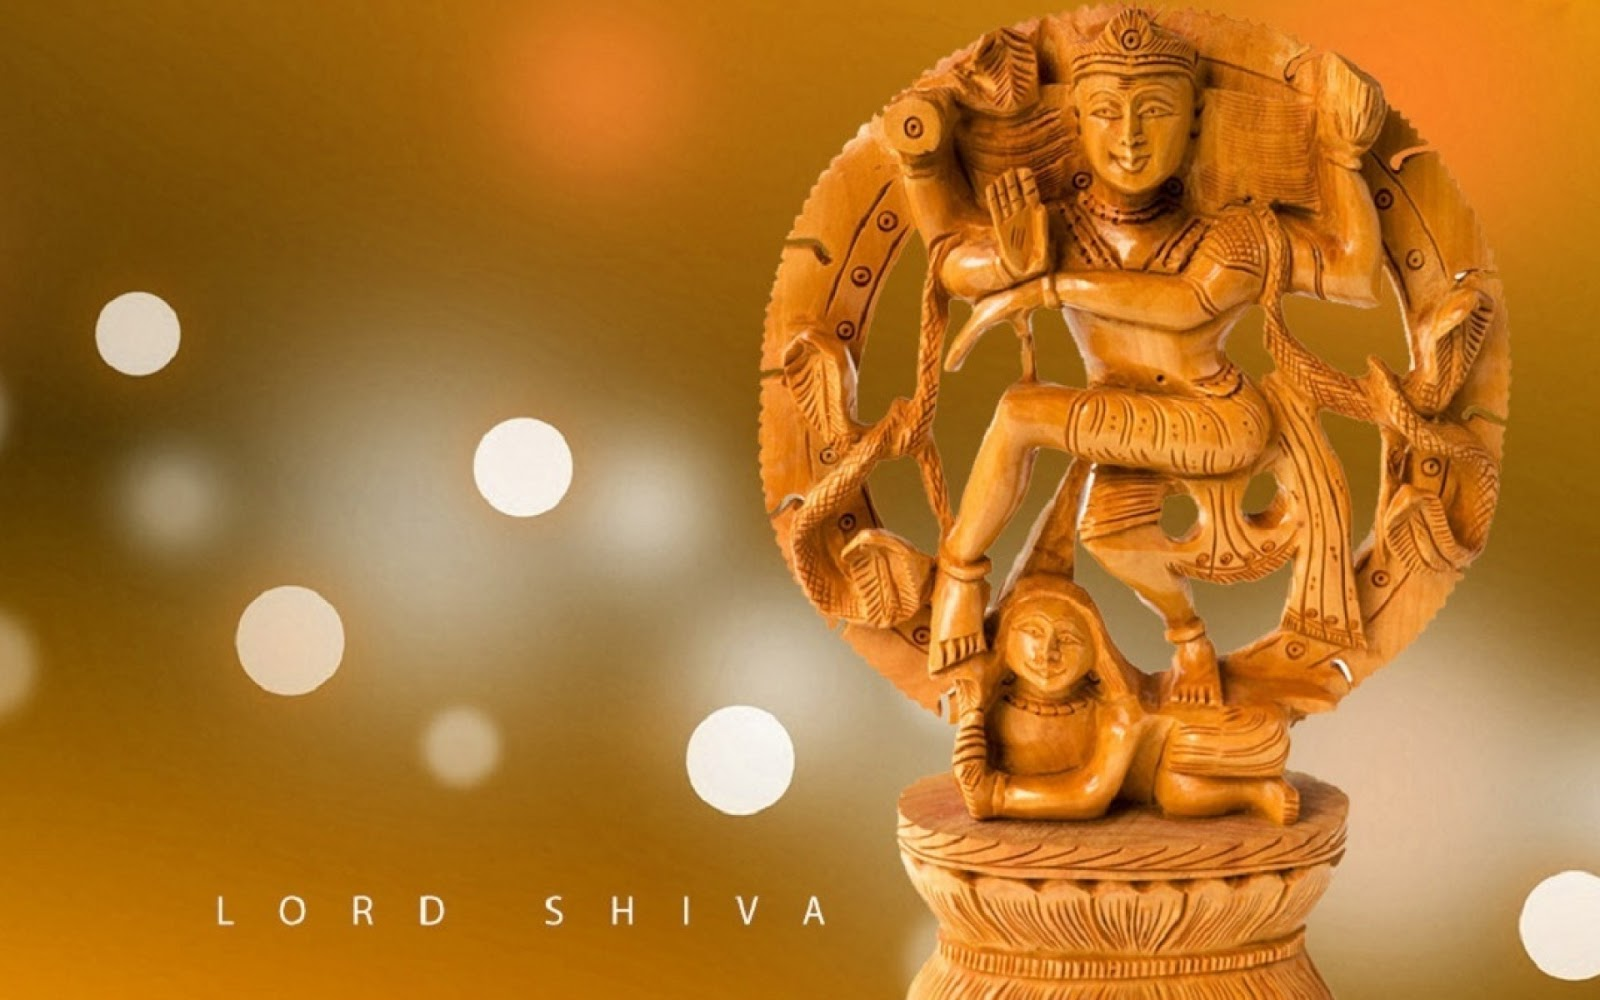 god shiva wallpaper hd